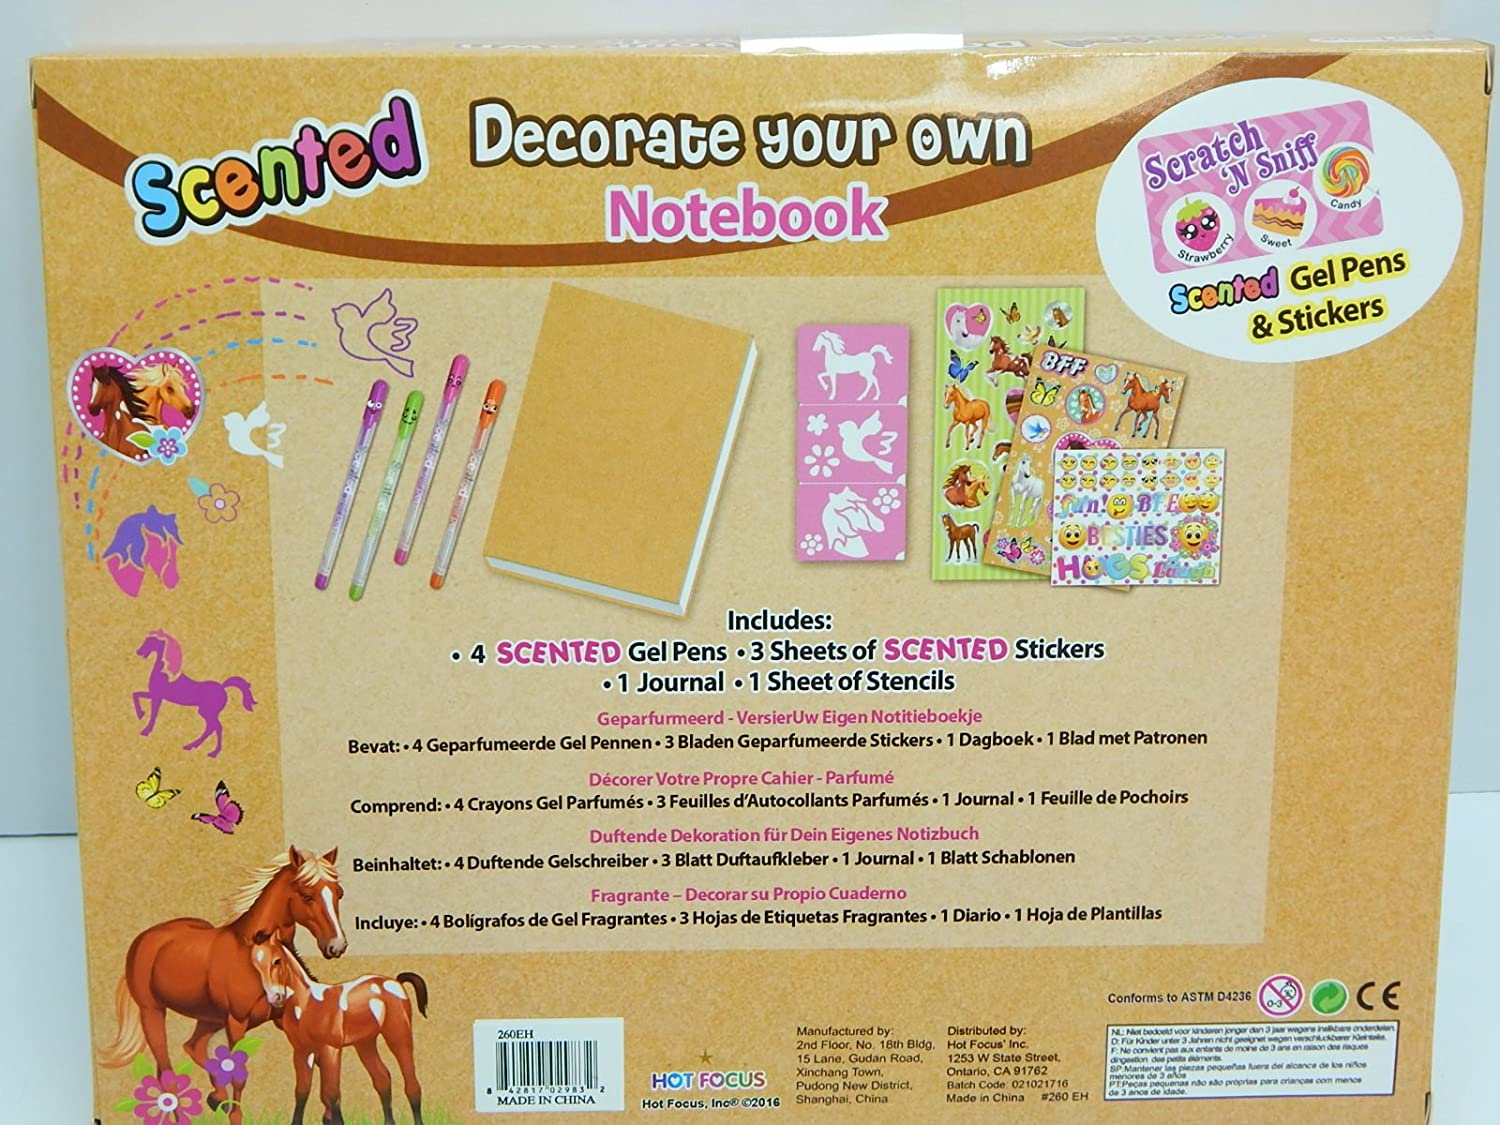 Hot Focus Scented Decorate Your Own Notebook #260EH